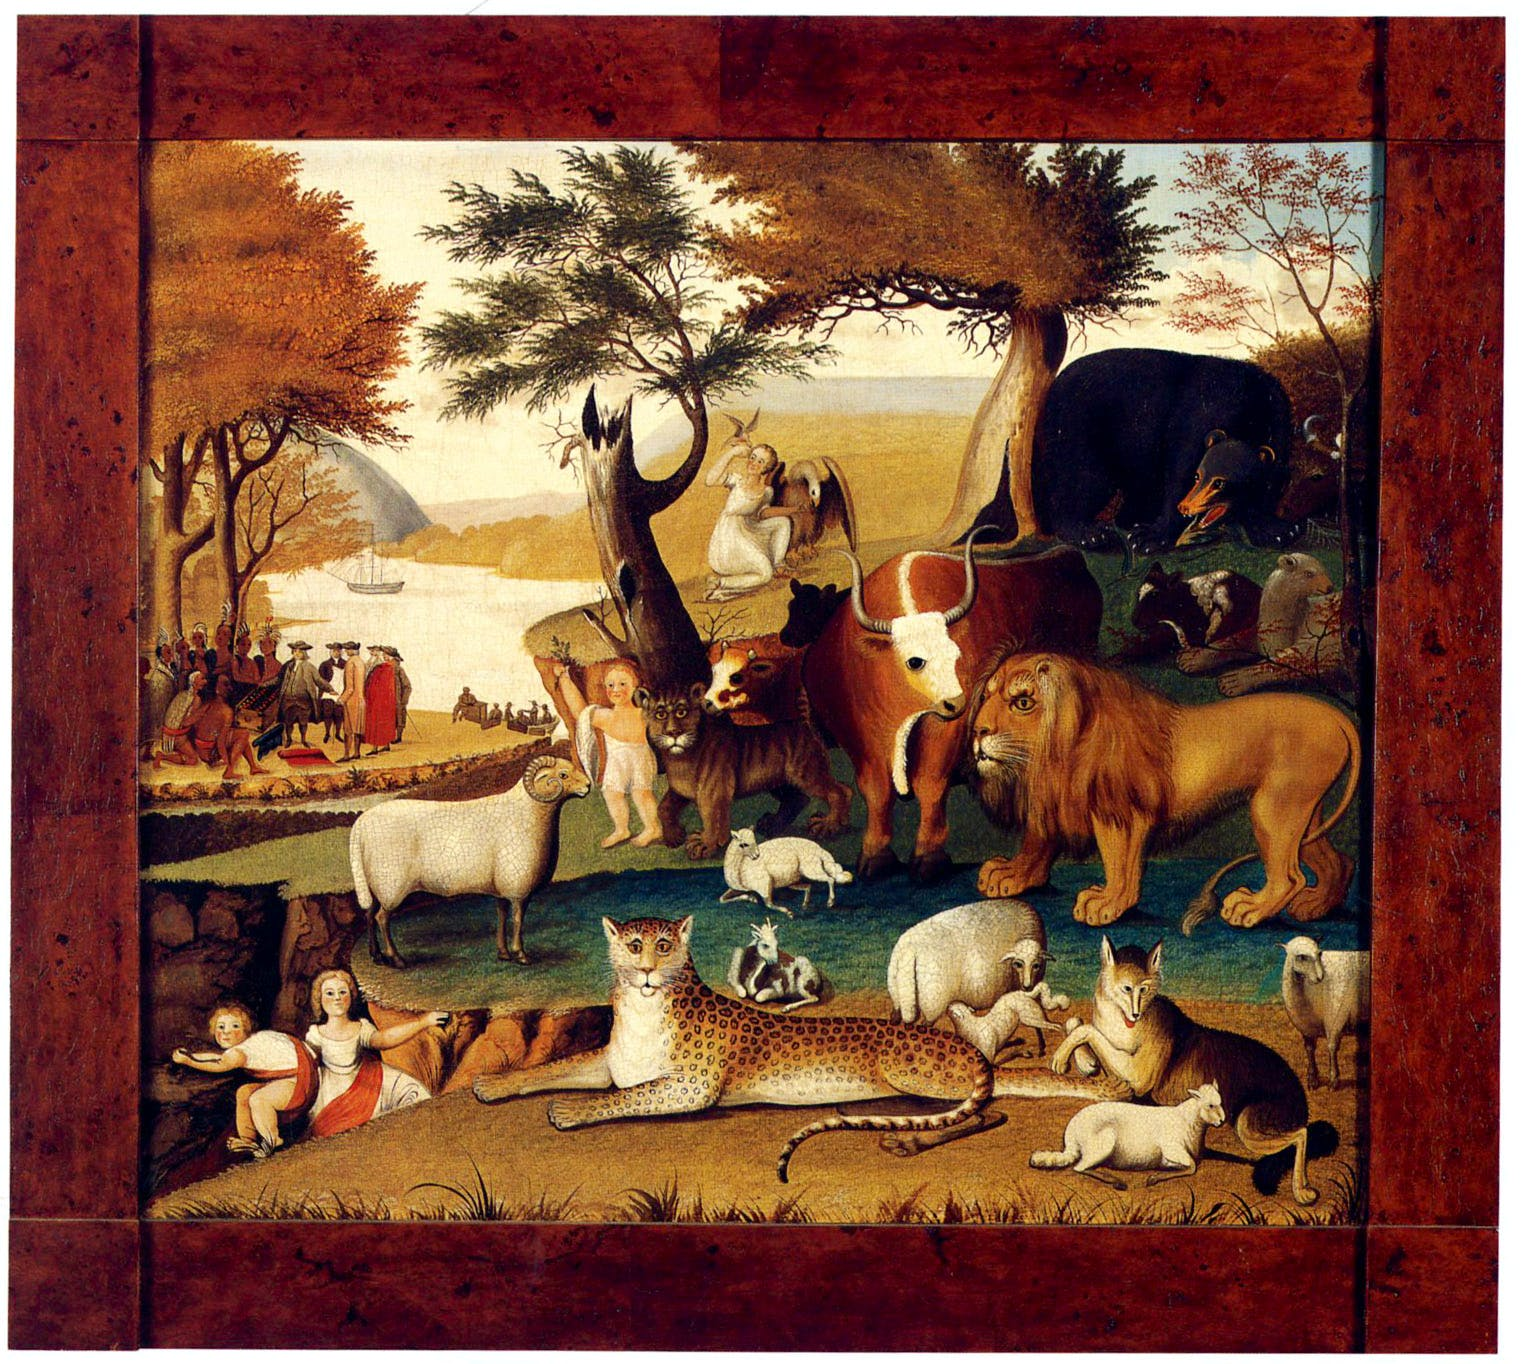 The Peaceable Kingdom with the Leopard of Serenity